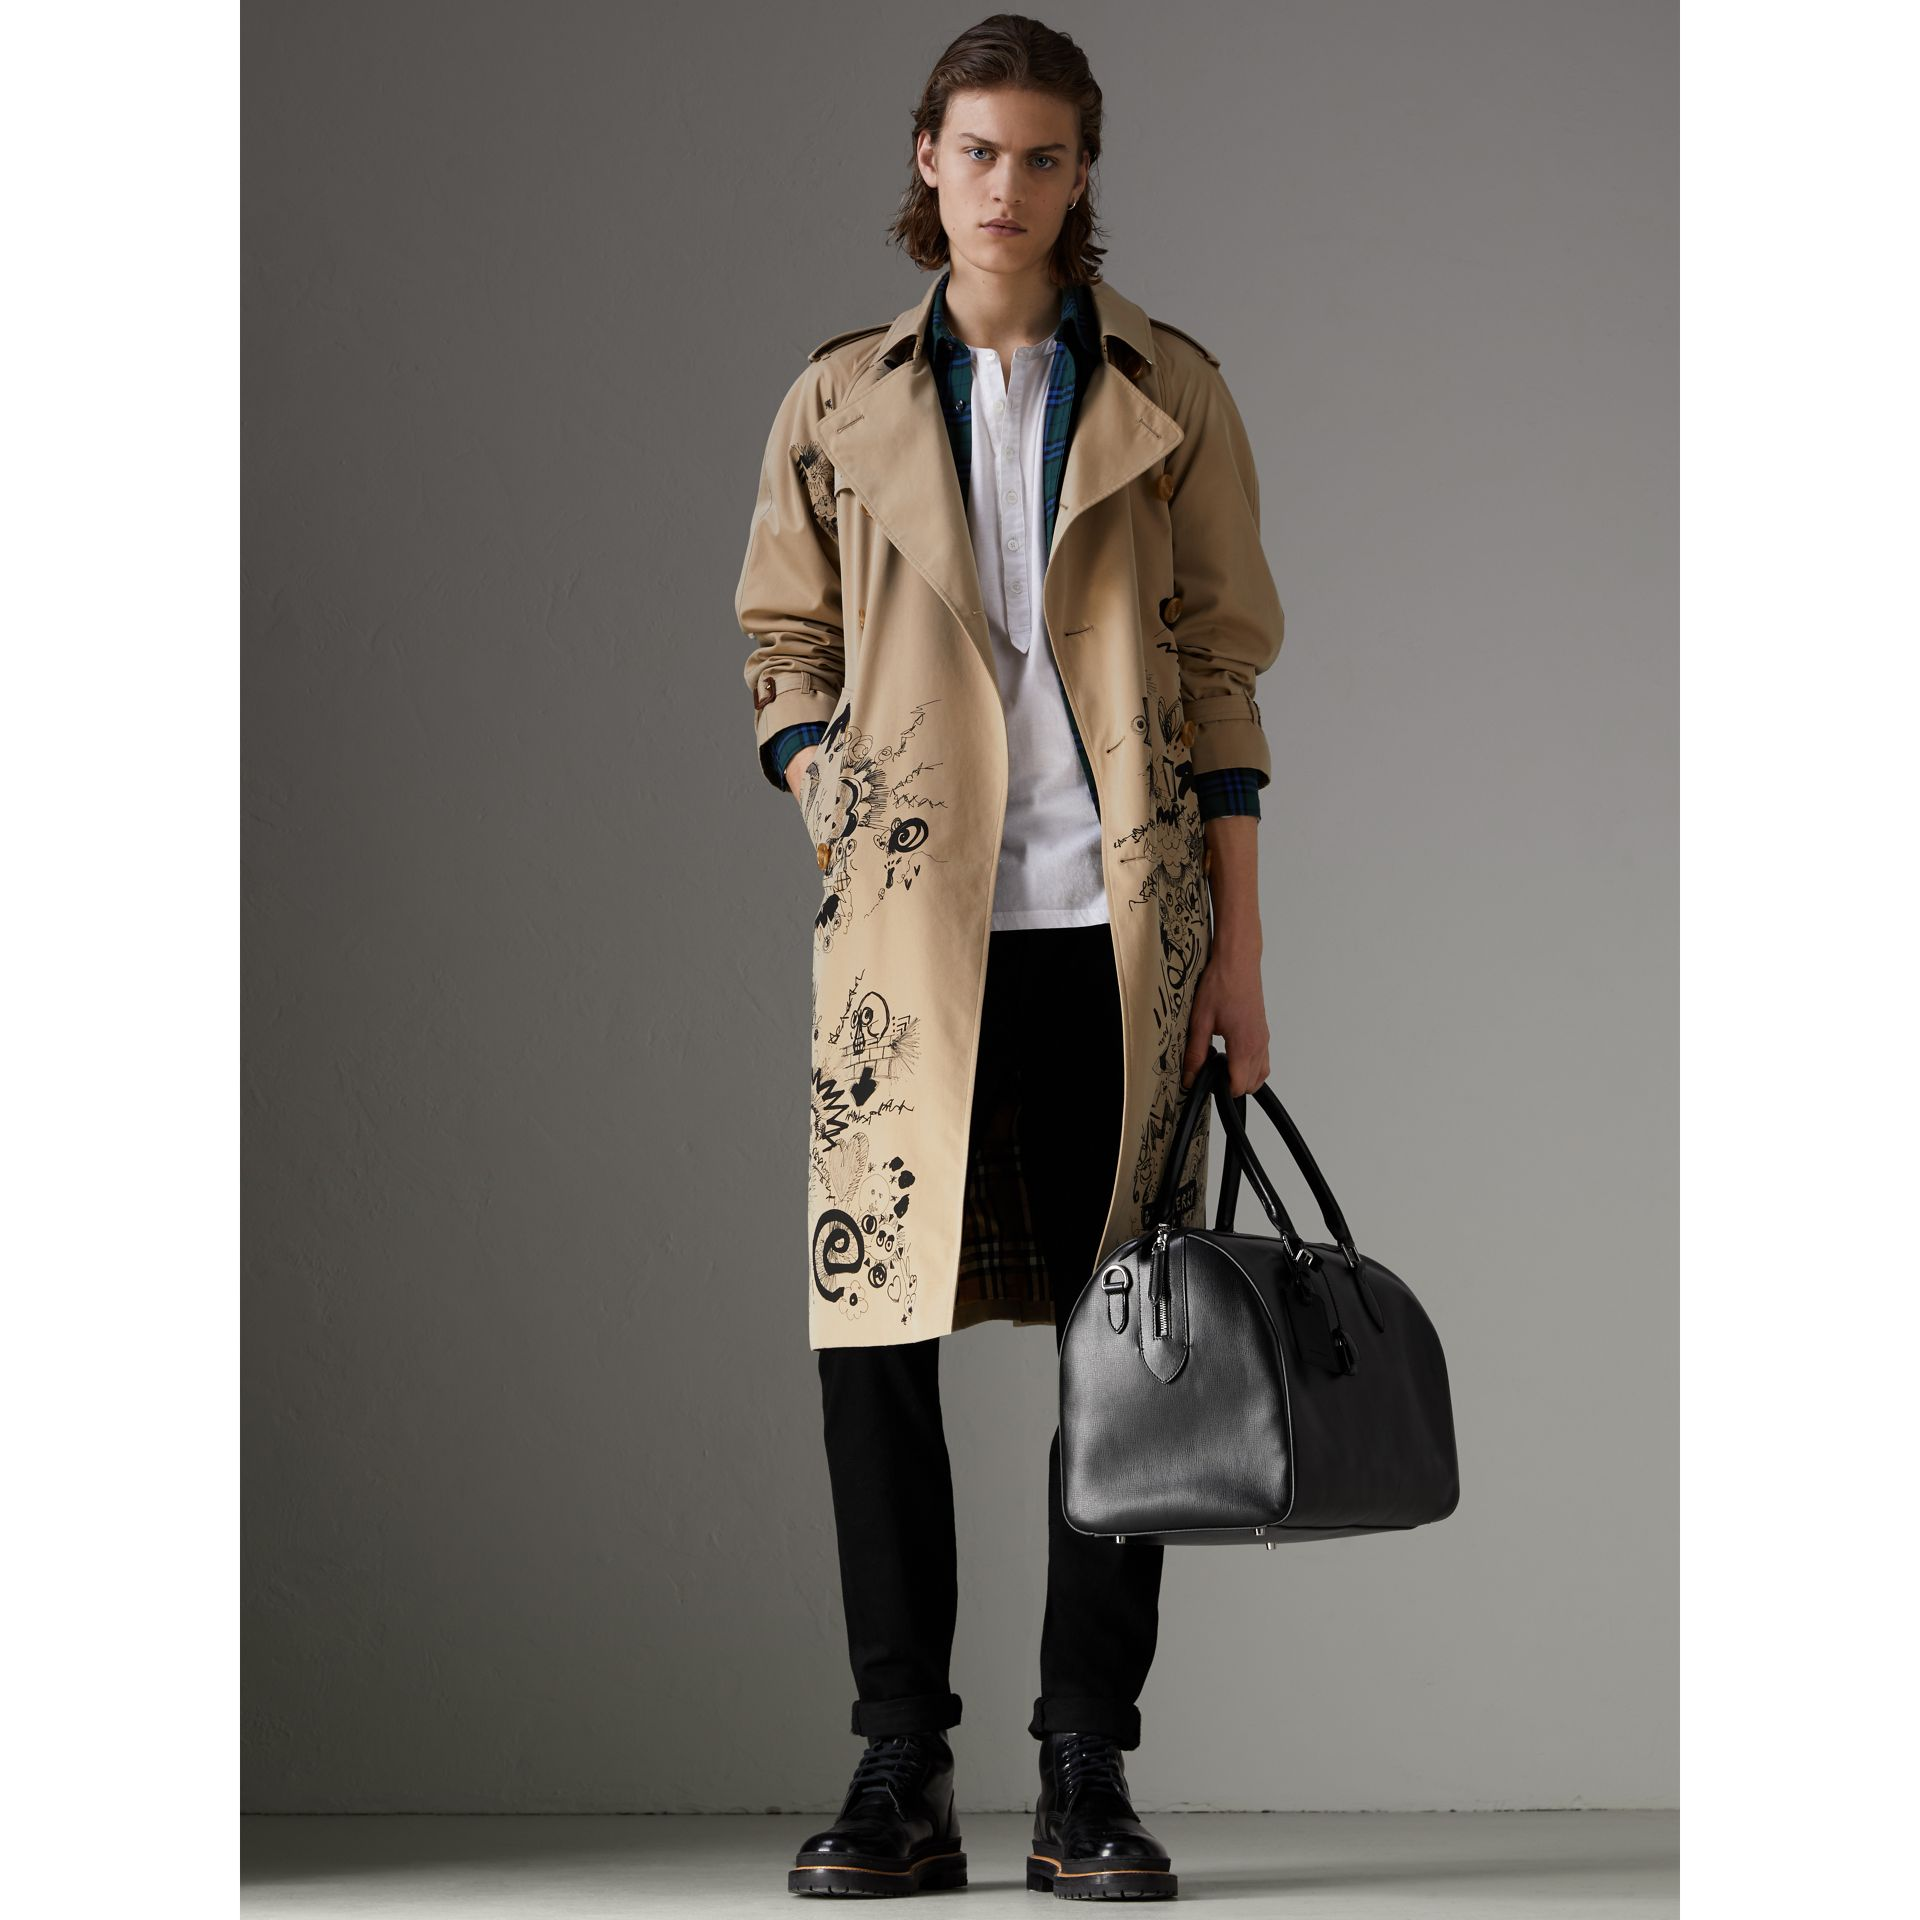 Fourre-tout en cuir London (Noir) | Burberry - photo de la galerie 2